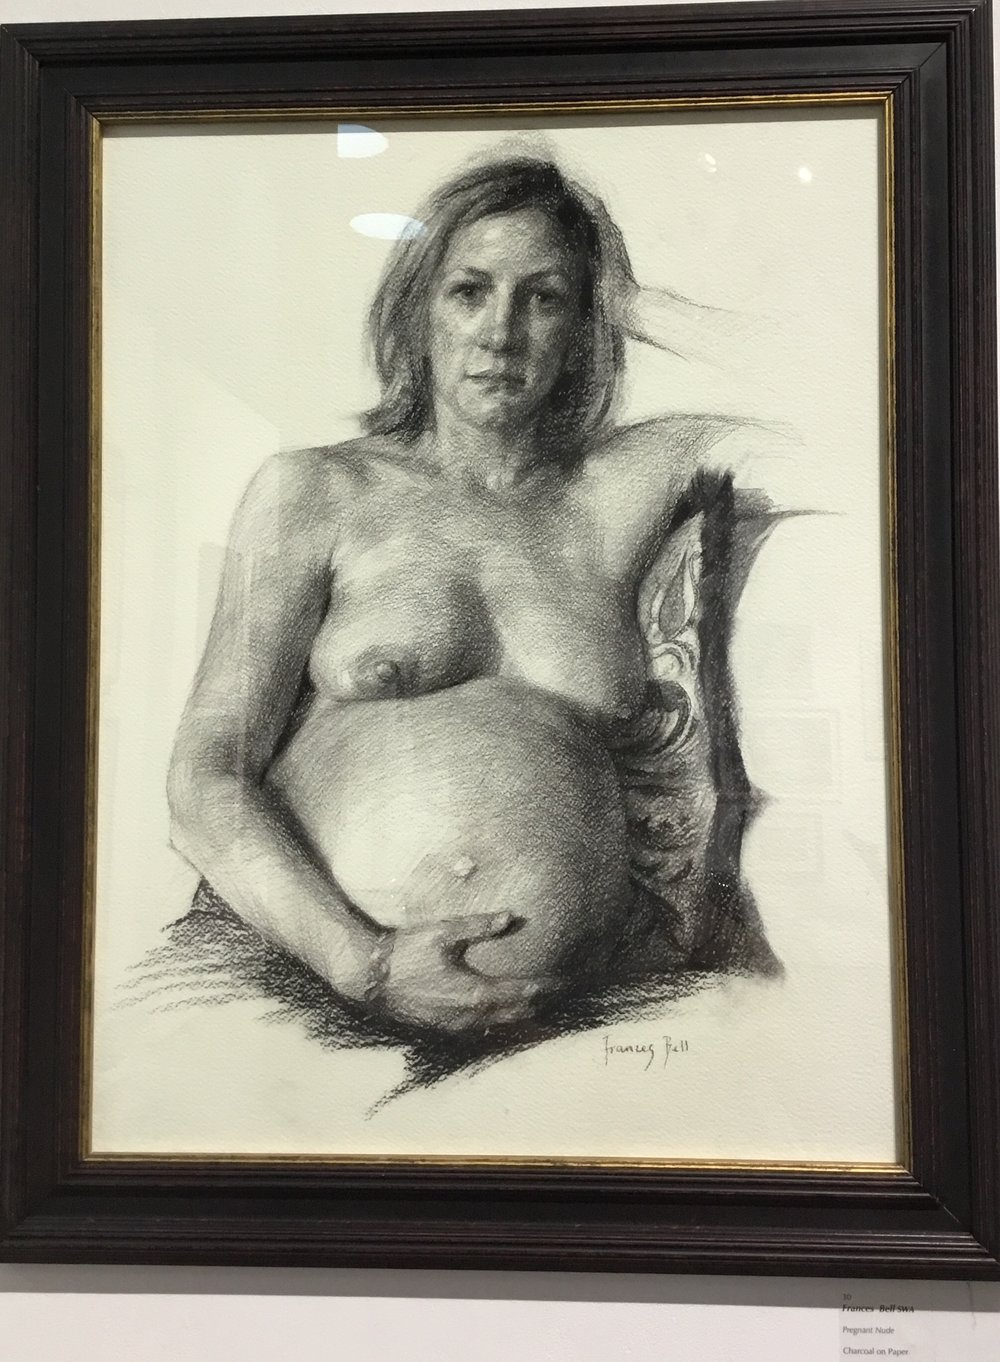 Francis Bell, drawing of Pregnant Nude. Love the complexity of model's  expression combined with her simple posture.